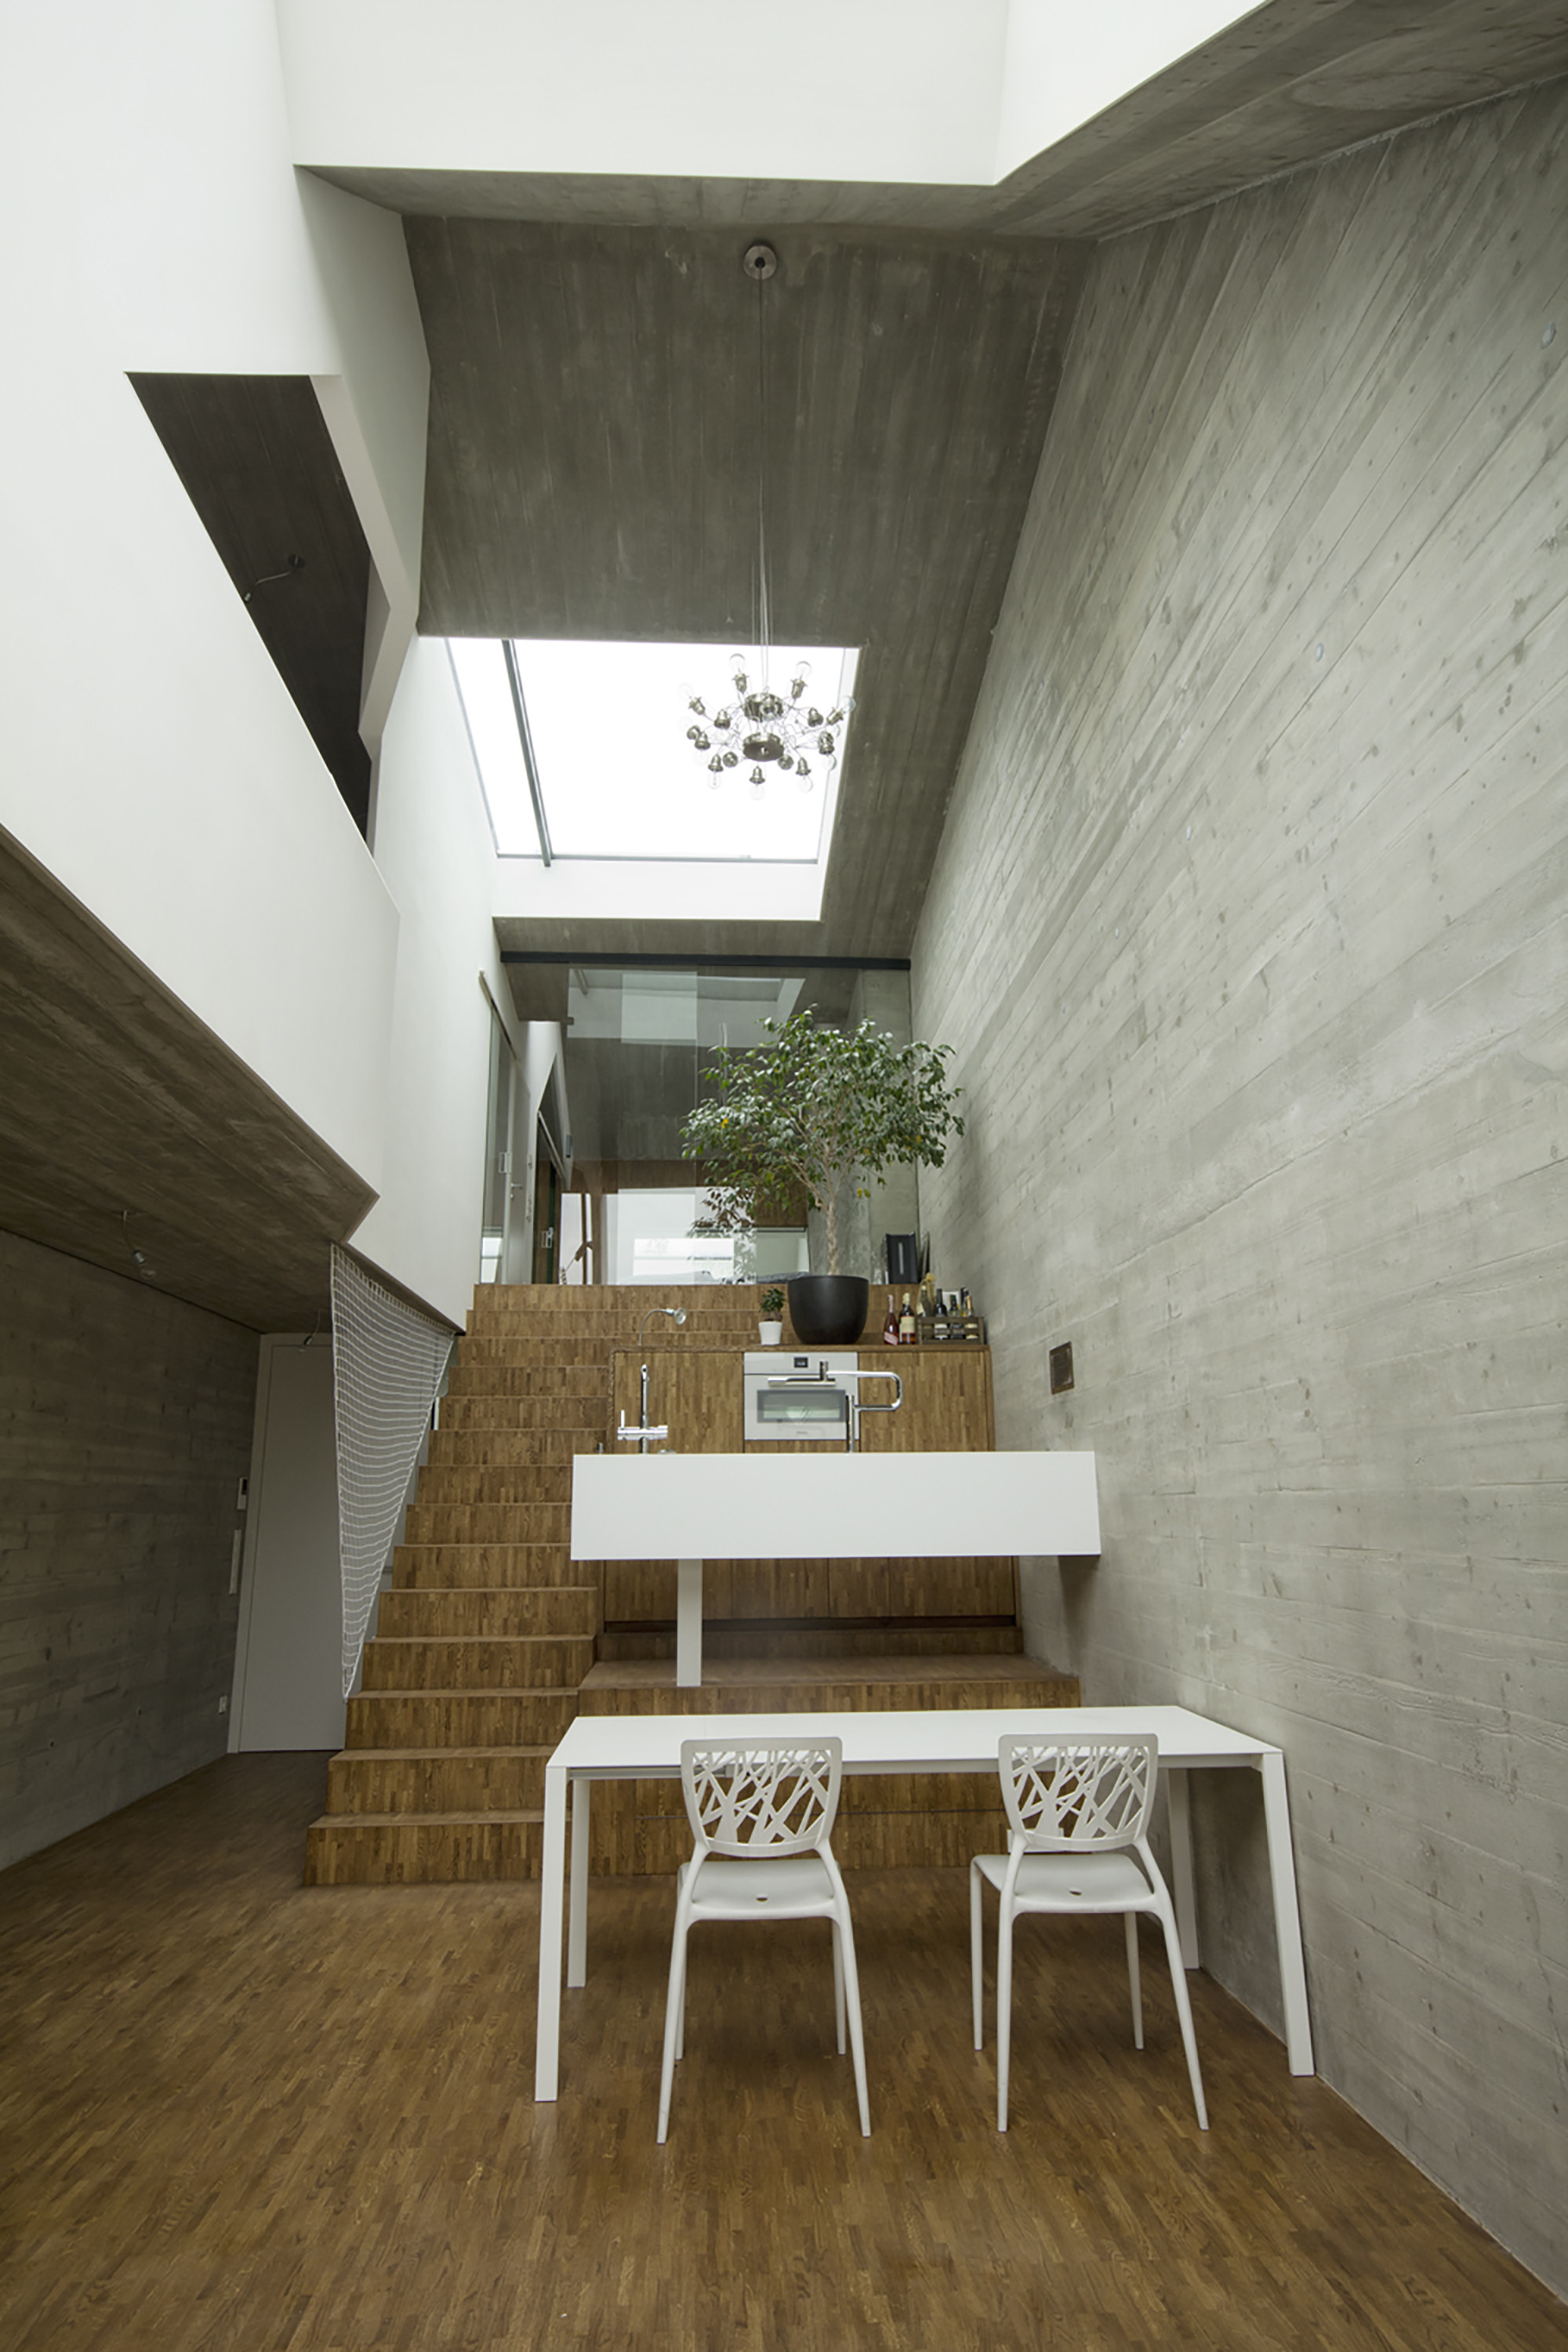 Gallery of cj5 house caramel architekten 6 - Caramel architekten ...